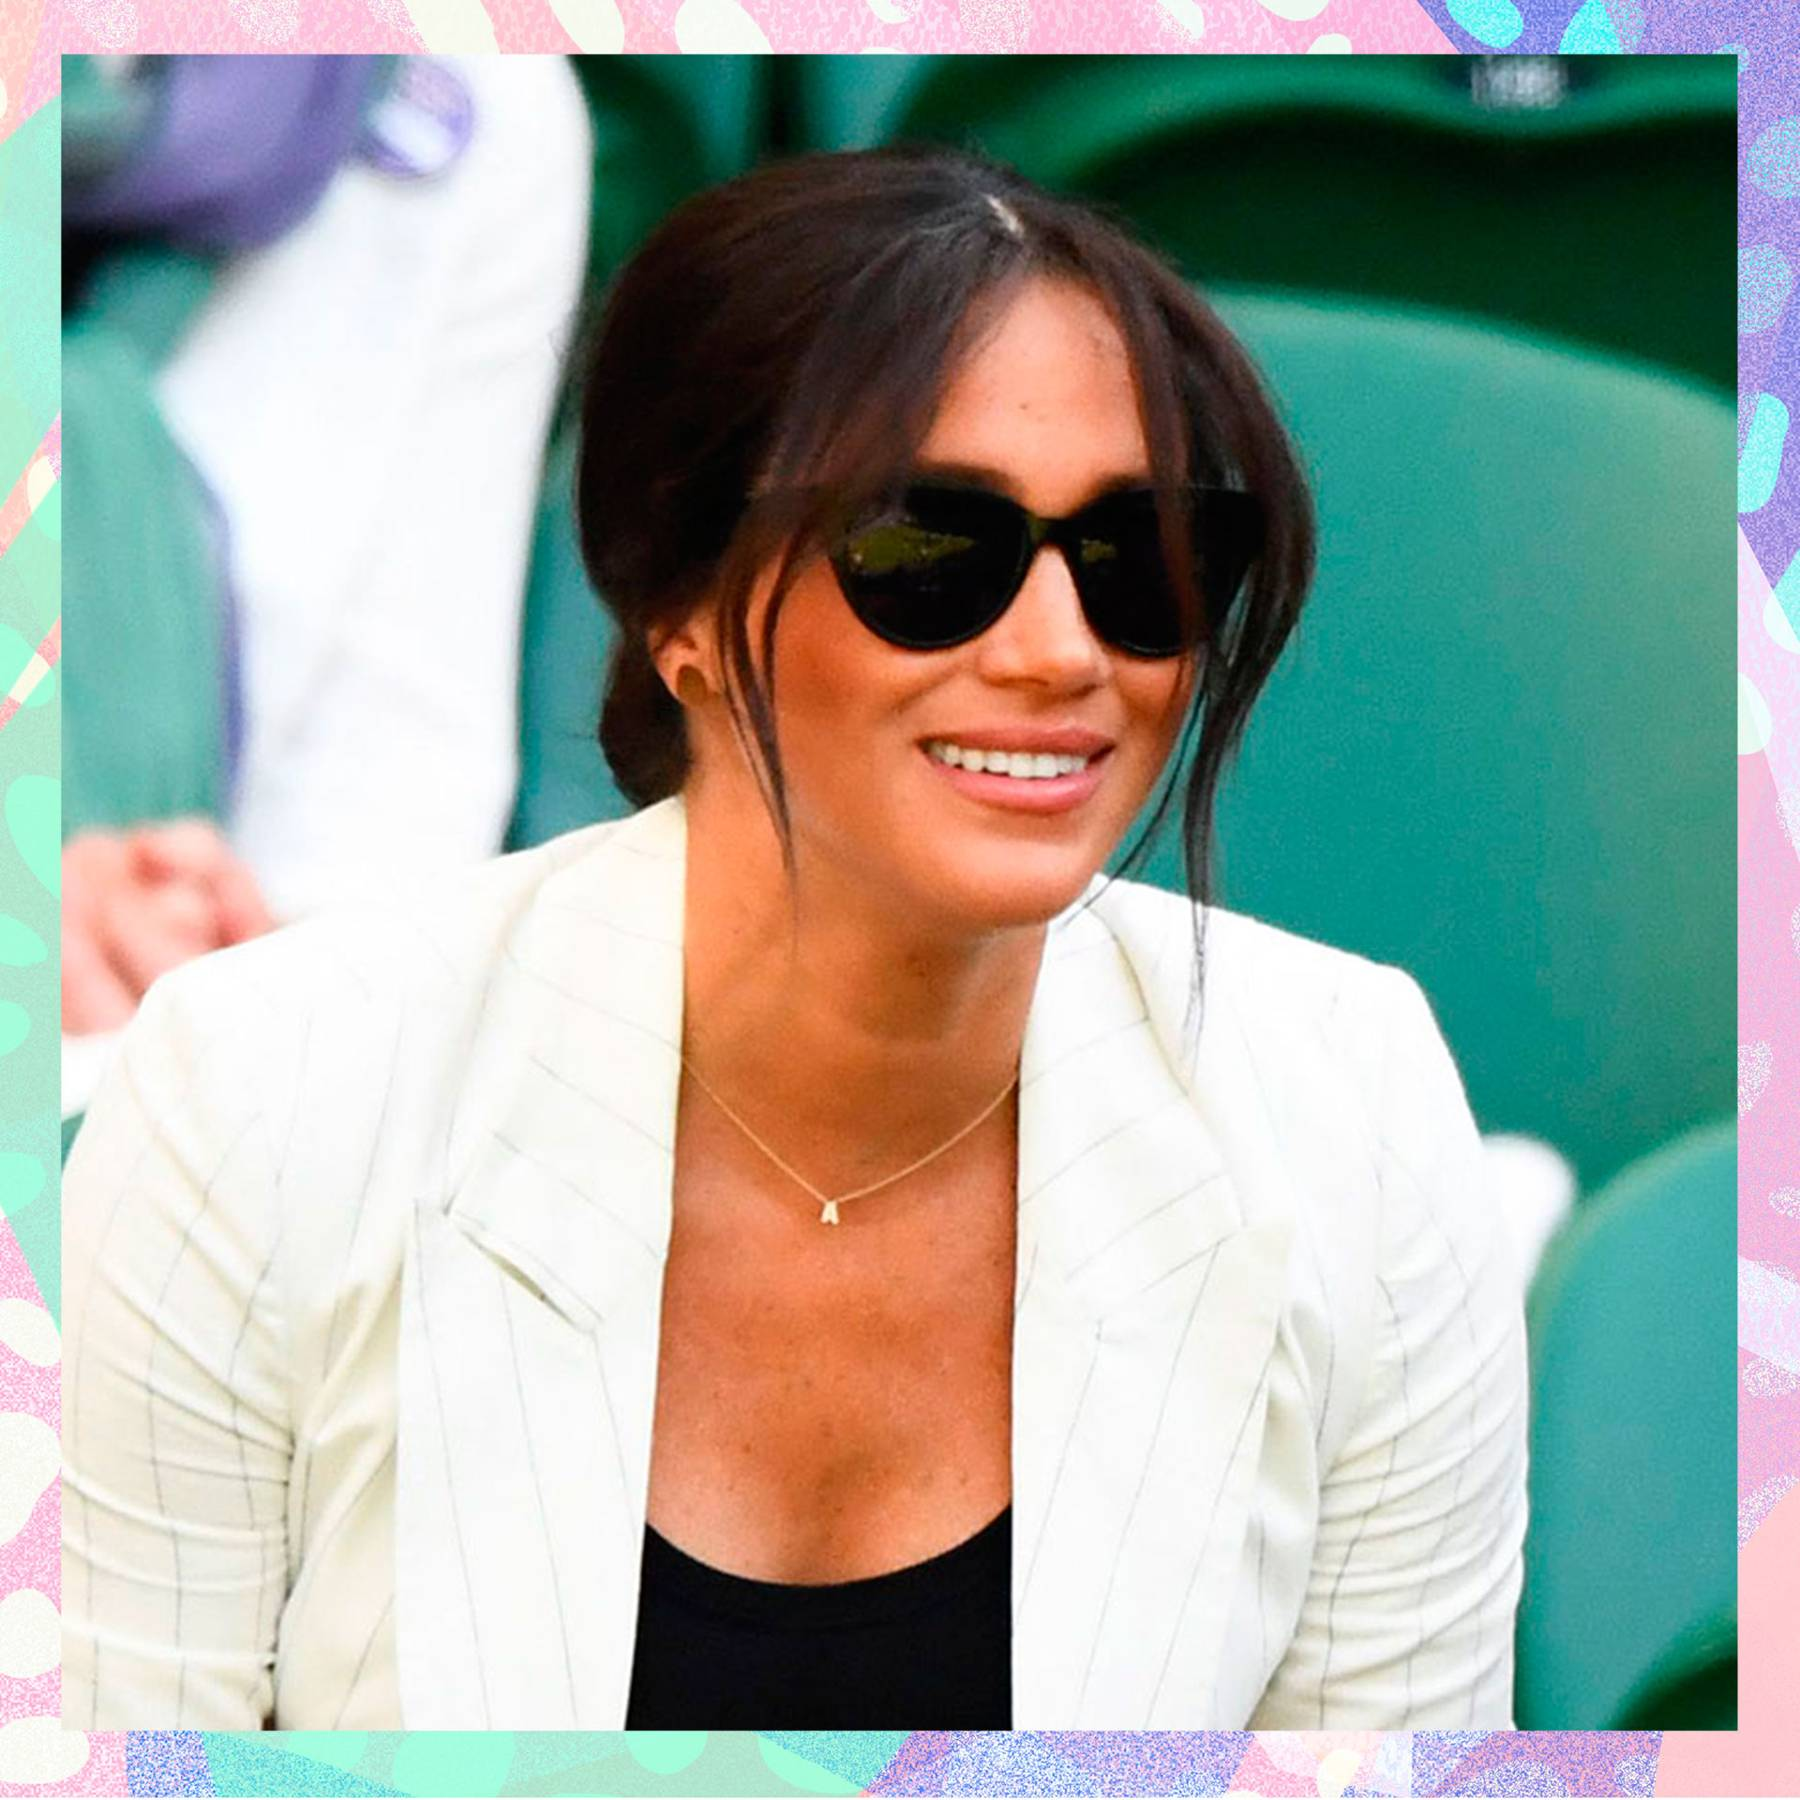 f22e152aefdc8 Meghan Markle Style & Fashion Pictures: Her Best Dressed Moments | Glamour  UK